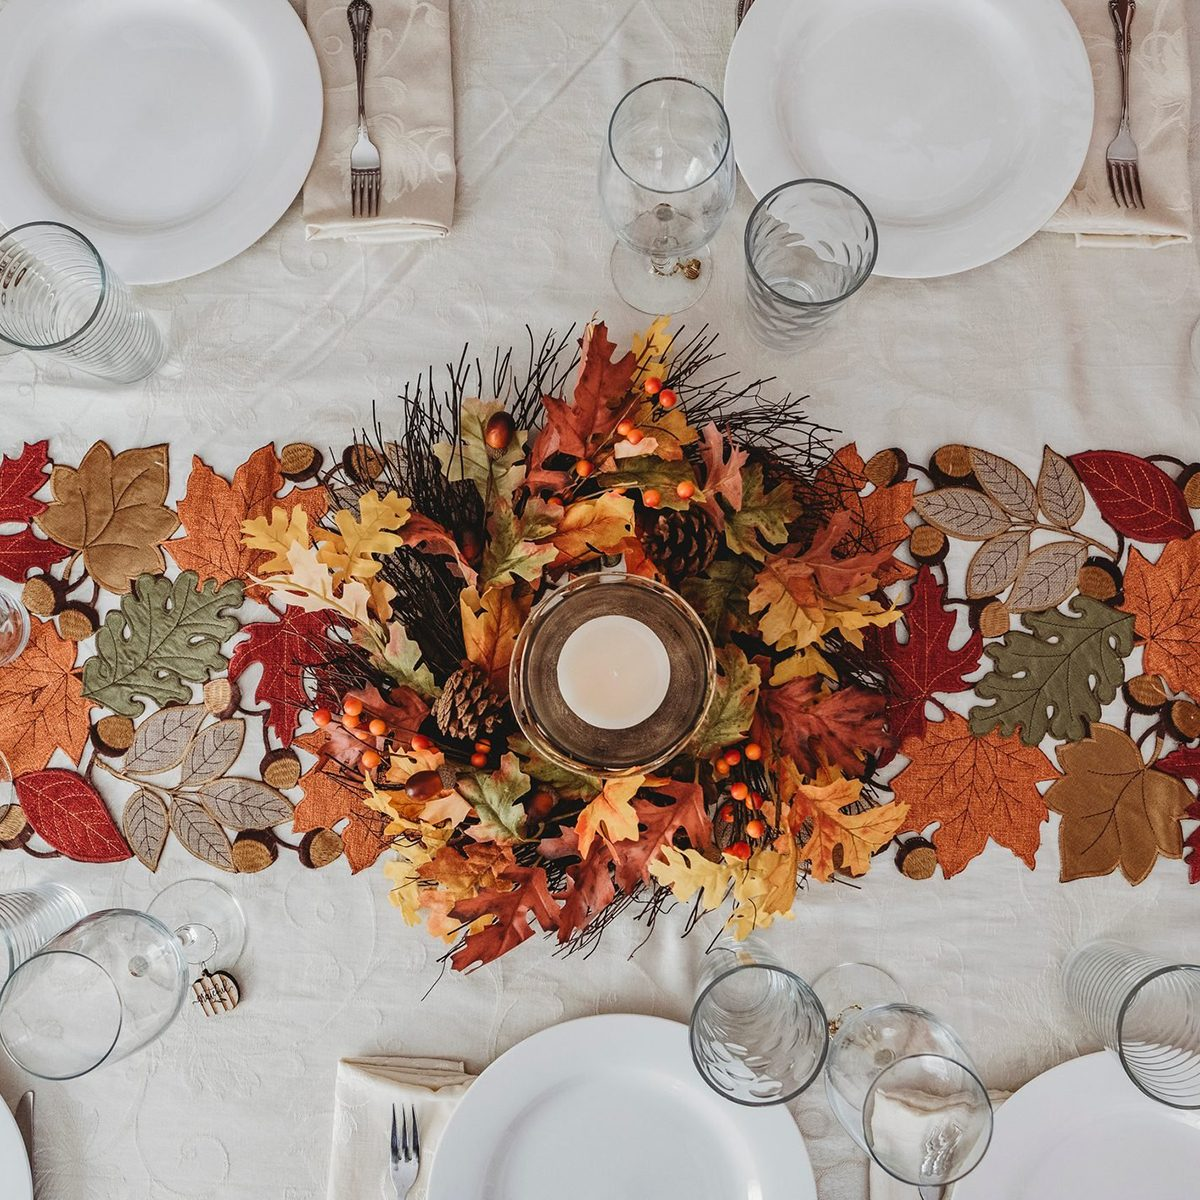 Table festively decorated for autumn holidays